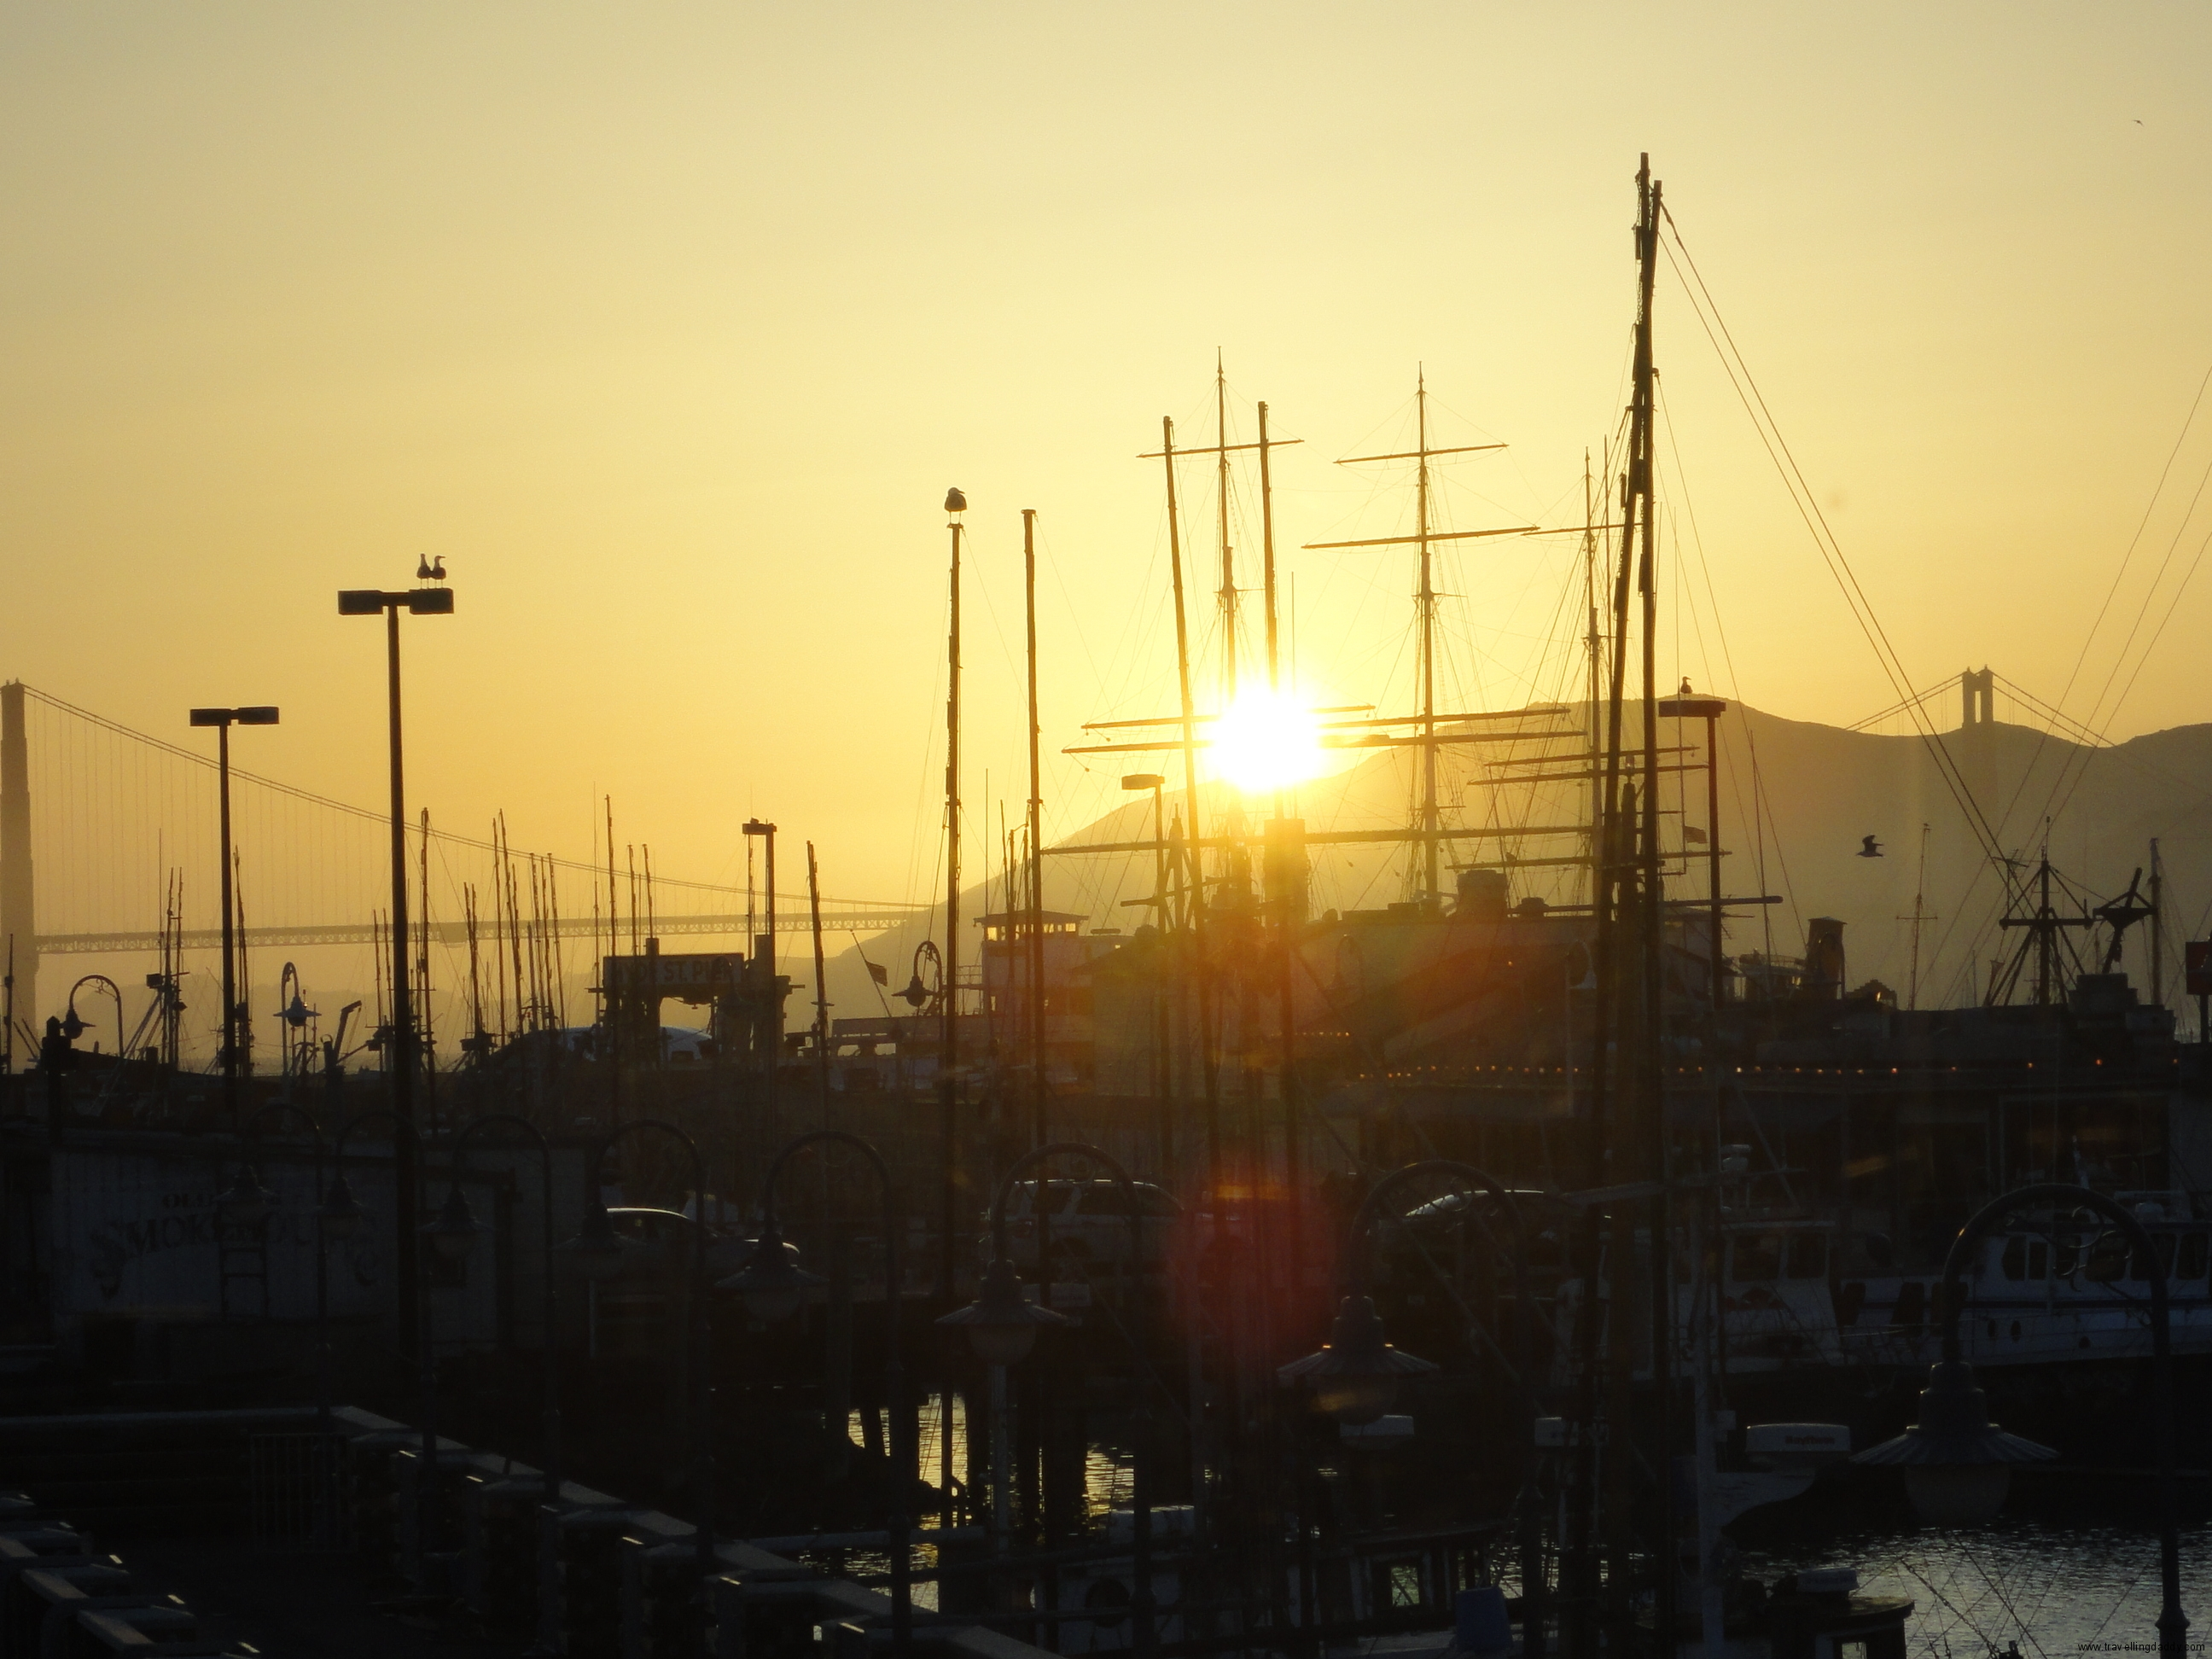 Sunset at Fishermans Wharf, San Franisco